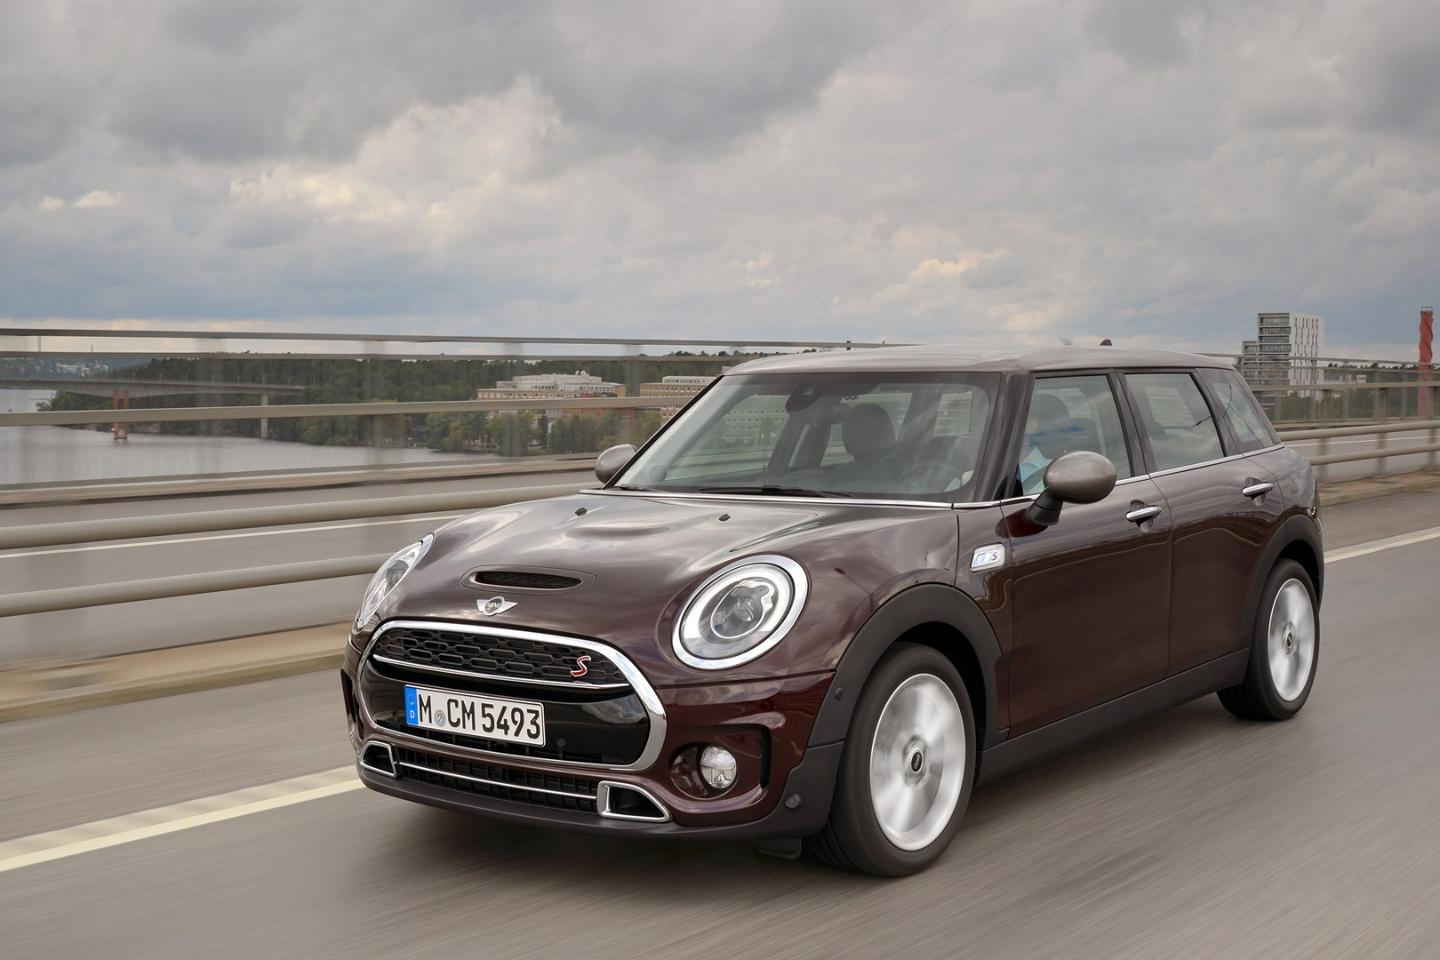 The new Mini Clubman has a noticably stretched body and roof-line